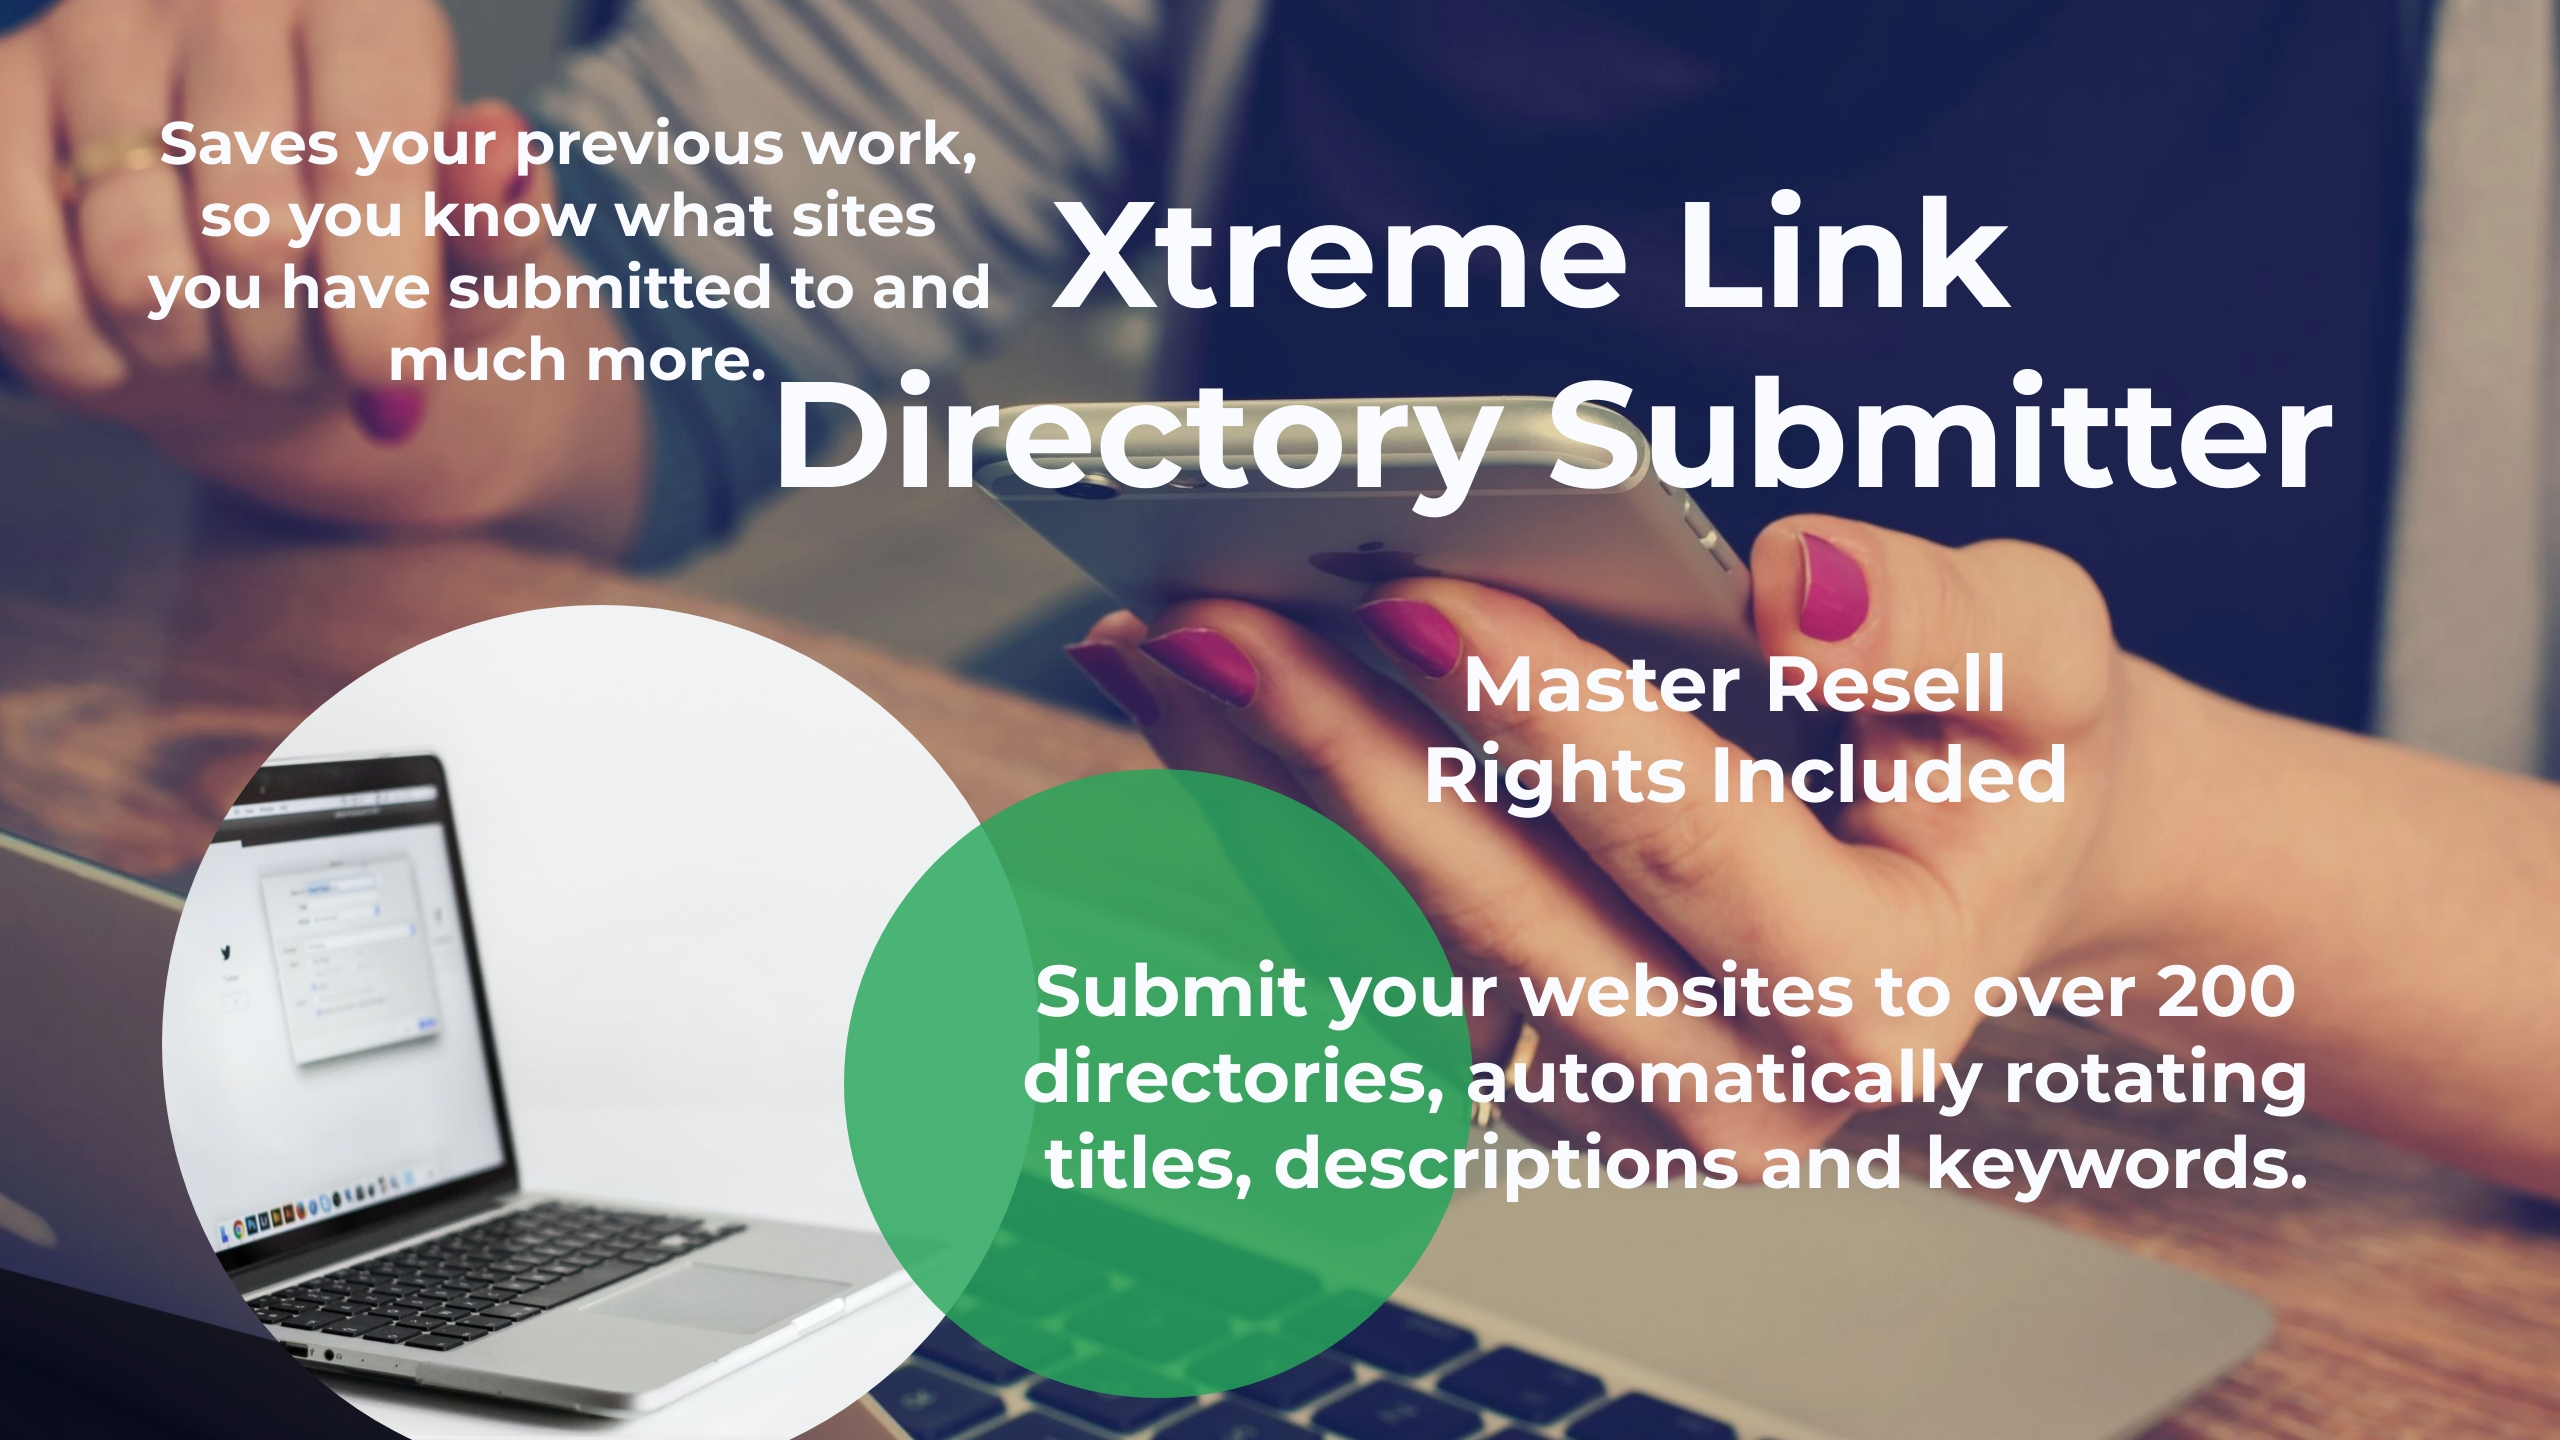 Xtreme Link Directory - Add Your Websites To Over 200 Directories